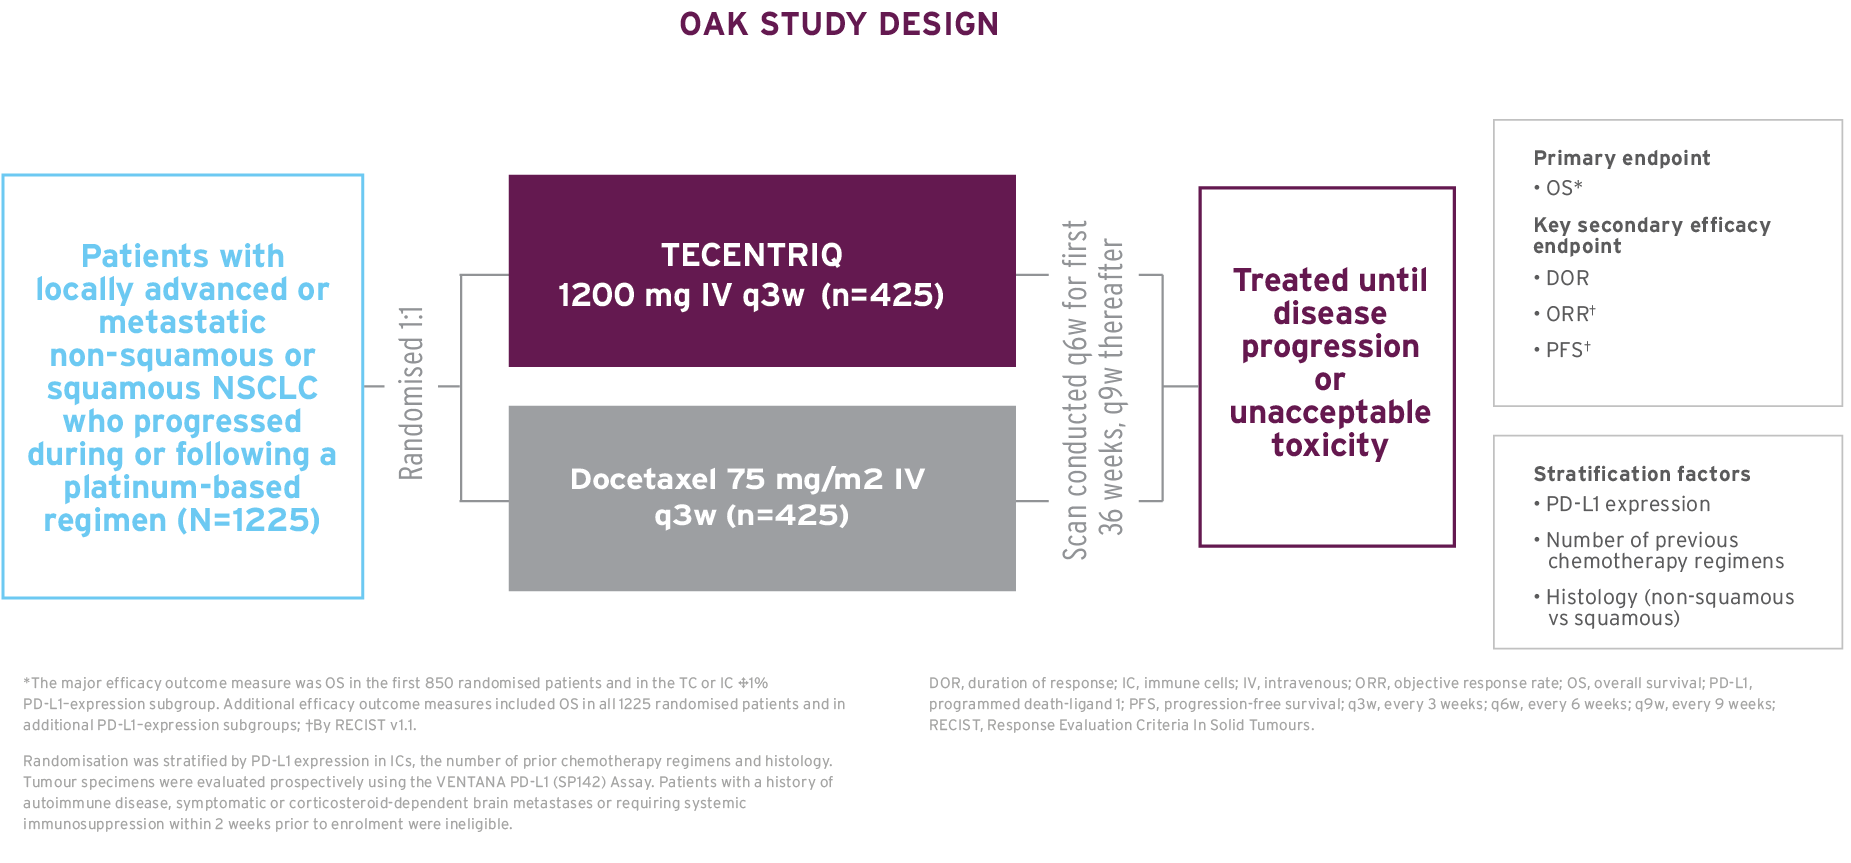 The study design of OAK, a Phase 3 trial in second-line non-squamous or squamous advanced/metastatic NSCLC.